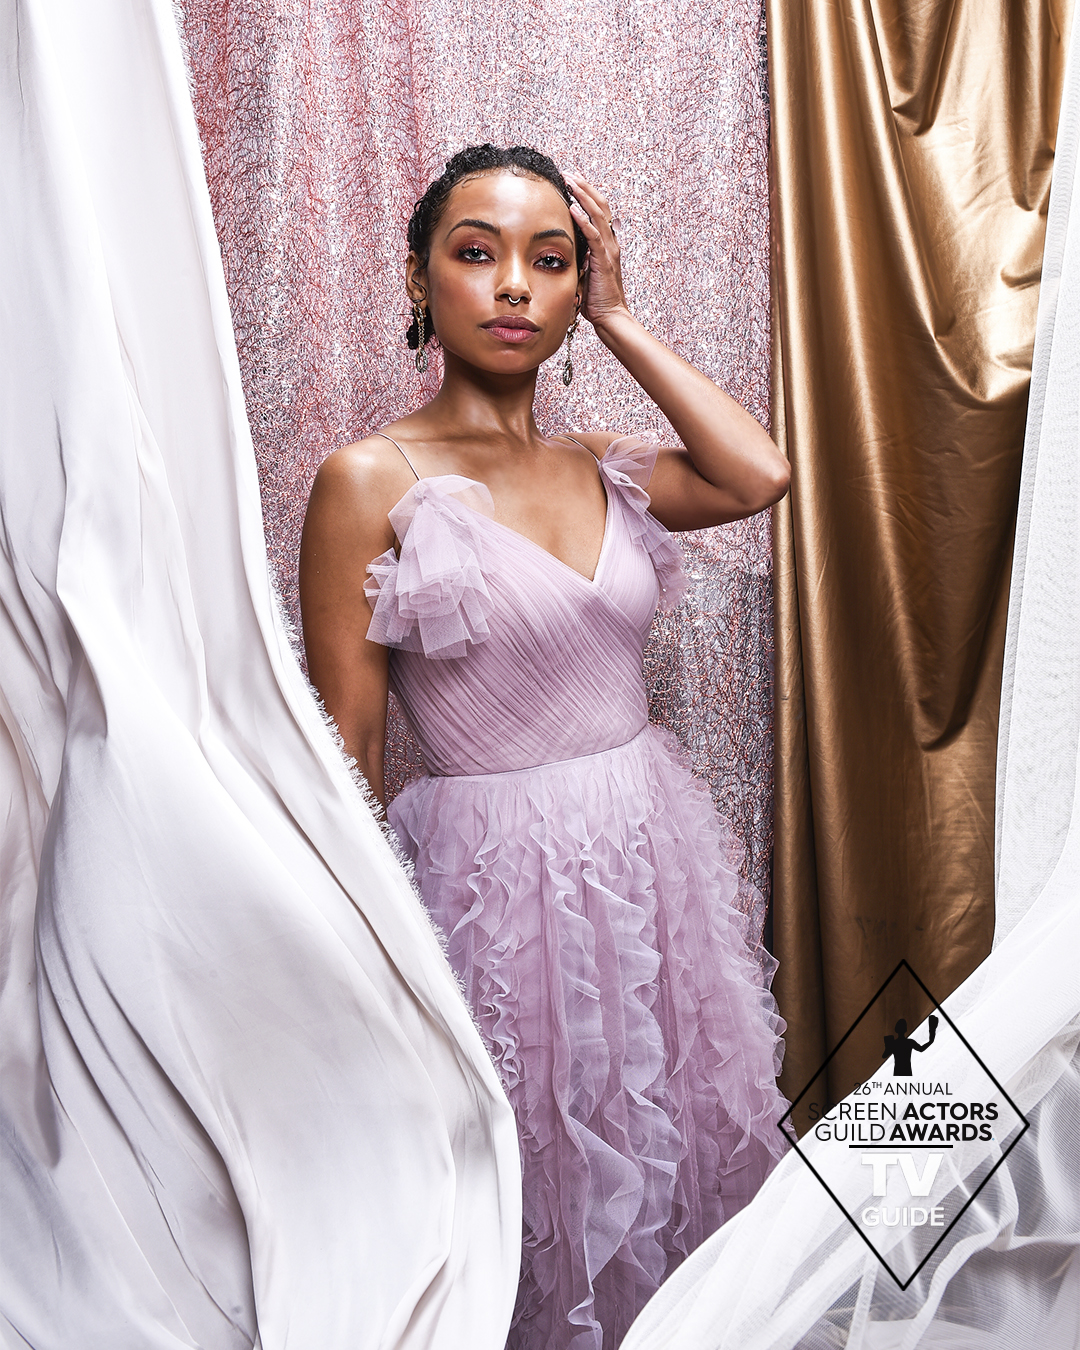 Kicking off our exclusive @SAGawards portraits with #SAGAwards ambassador and absolute vision @loganlaurice 👑 https://t.co/hfT8vrALAW